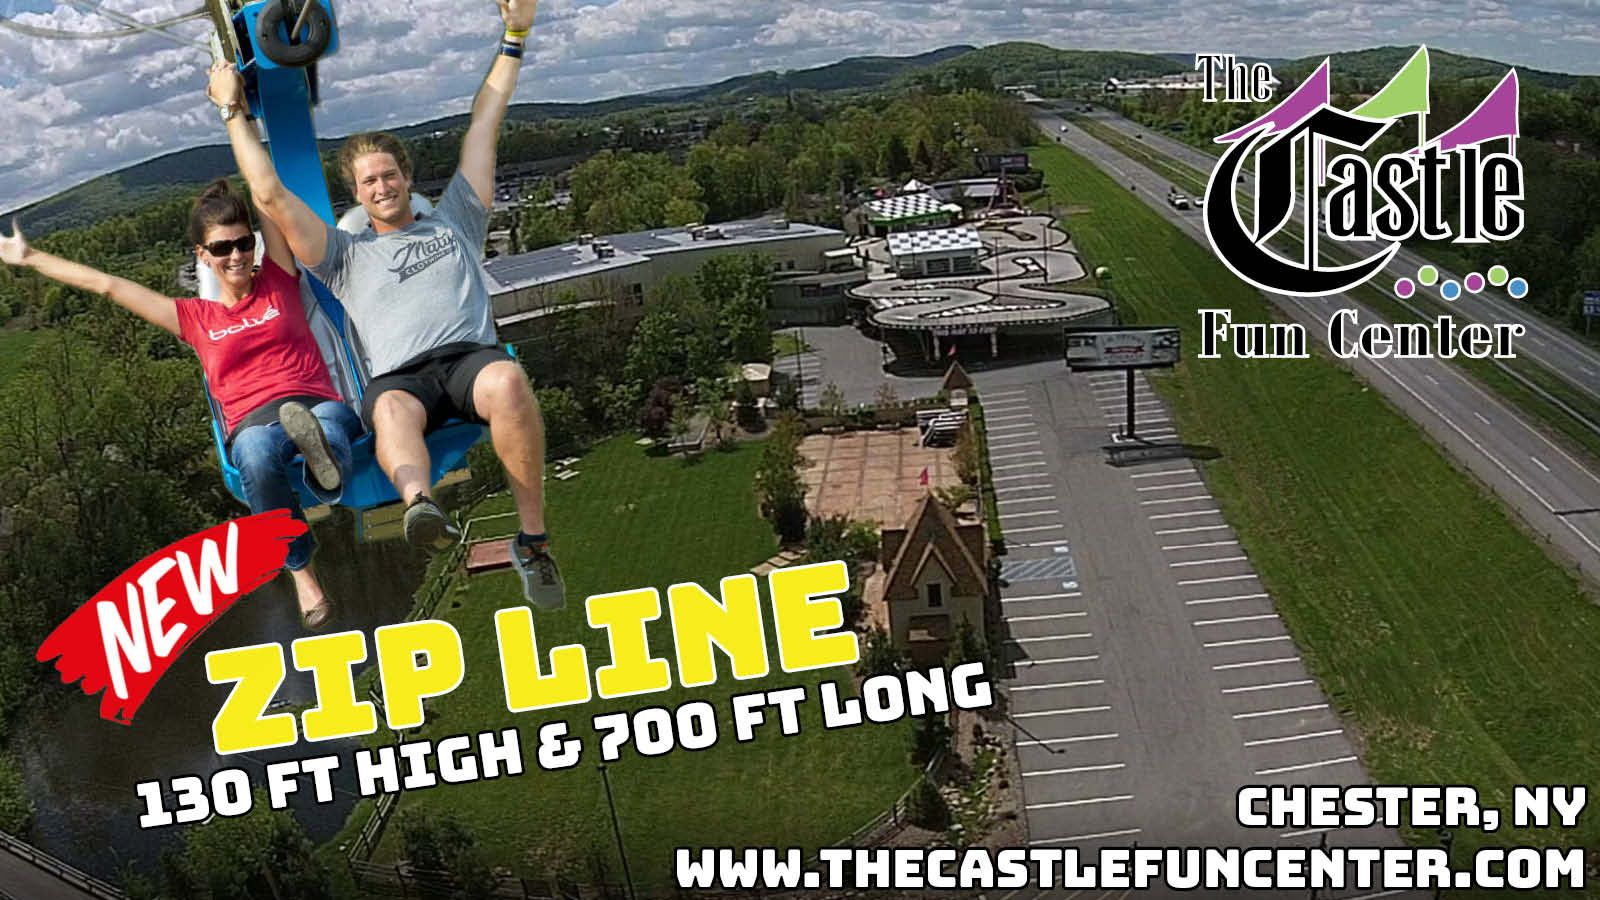 Zip Line At The Castle Fun Center In Chester Ny Hudson Valley Orange County New York Amusement Park Www Thecast Ziplining Zip Line Ride Family Entertainment